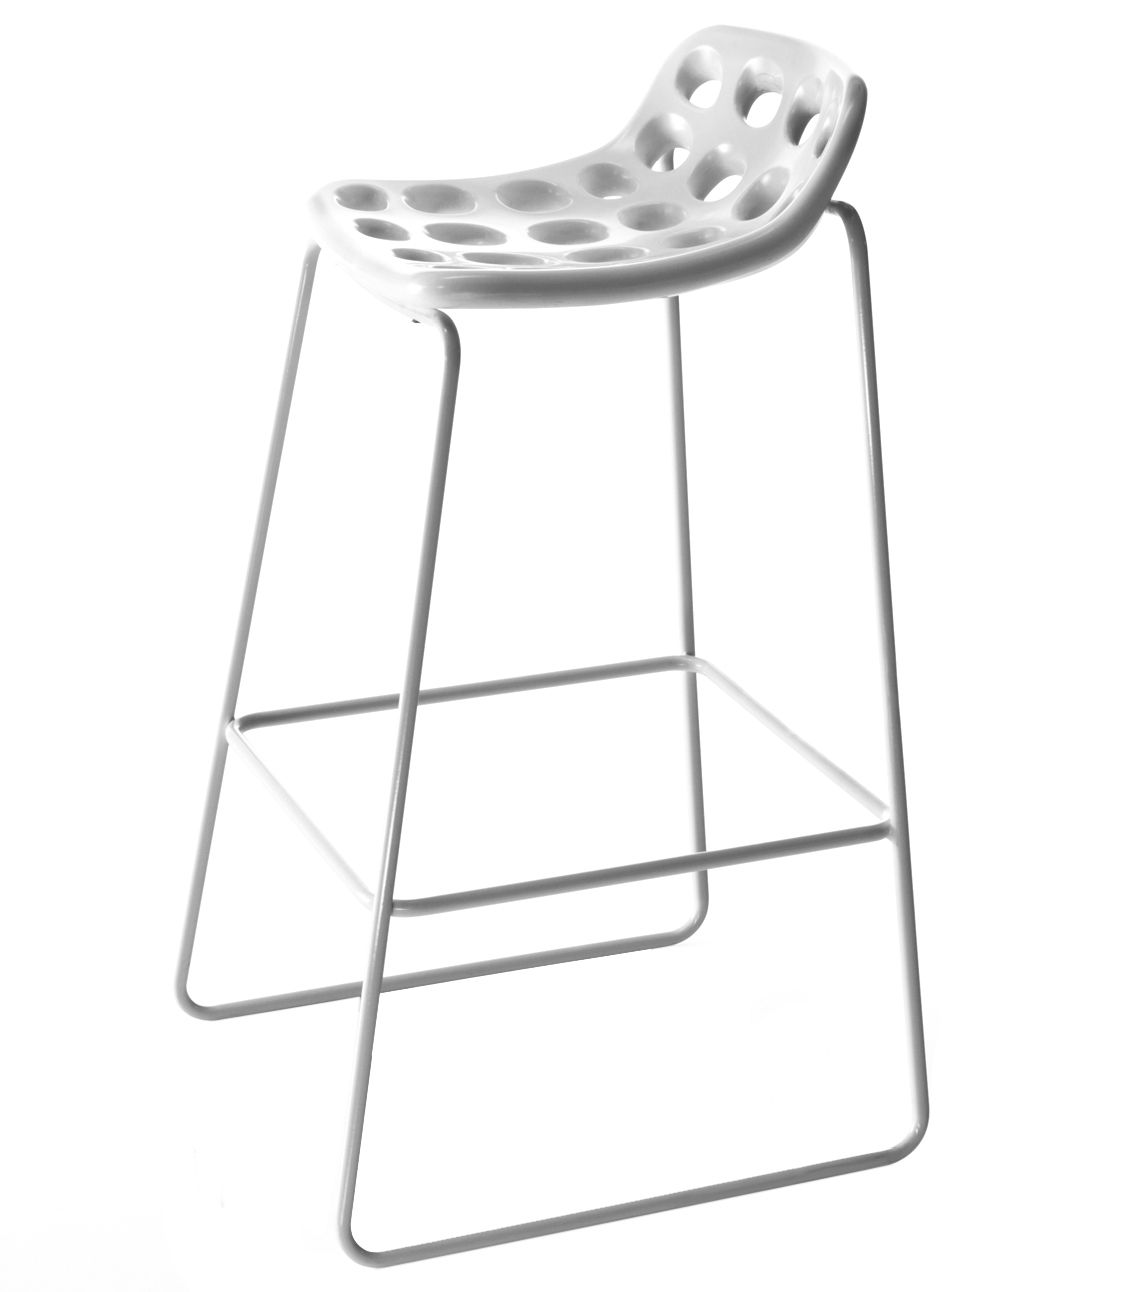 Furniture - Bar Stools - Chips Bar stool - H 85 cm - Plastic seat by MyYour - White - Painted stainless steel, Polythene